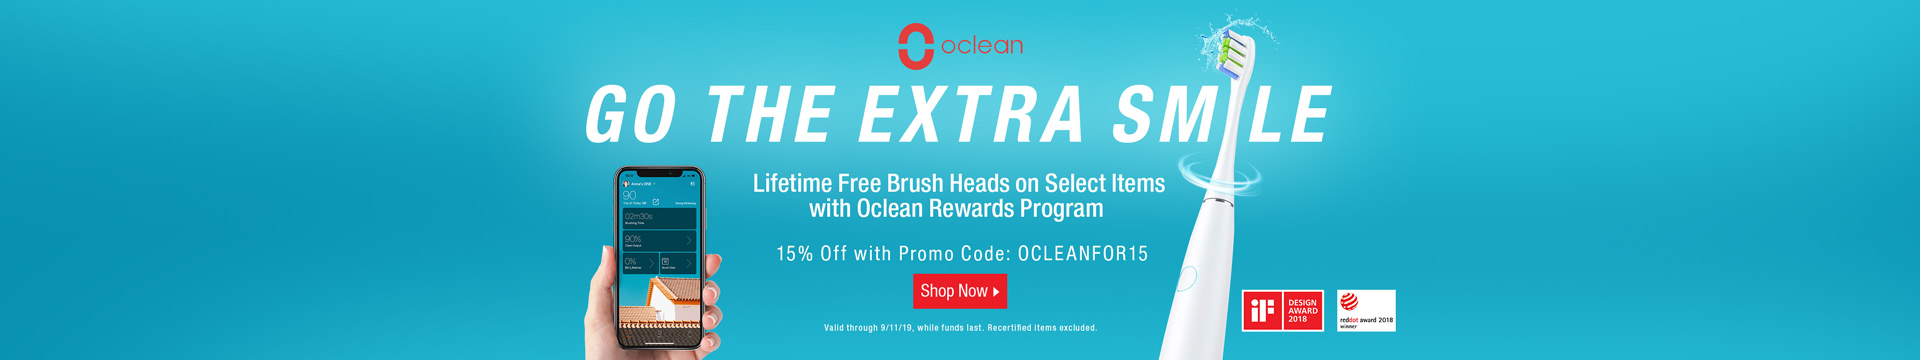 15% off Oclean Toothbrushes with Promo Code